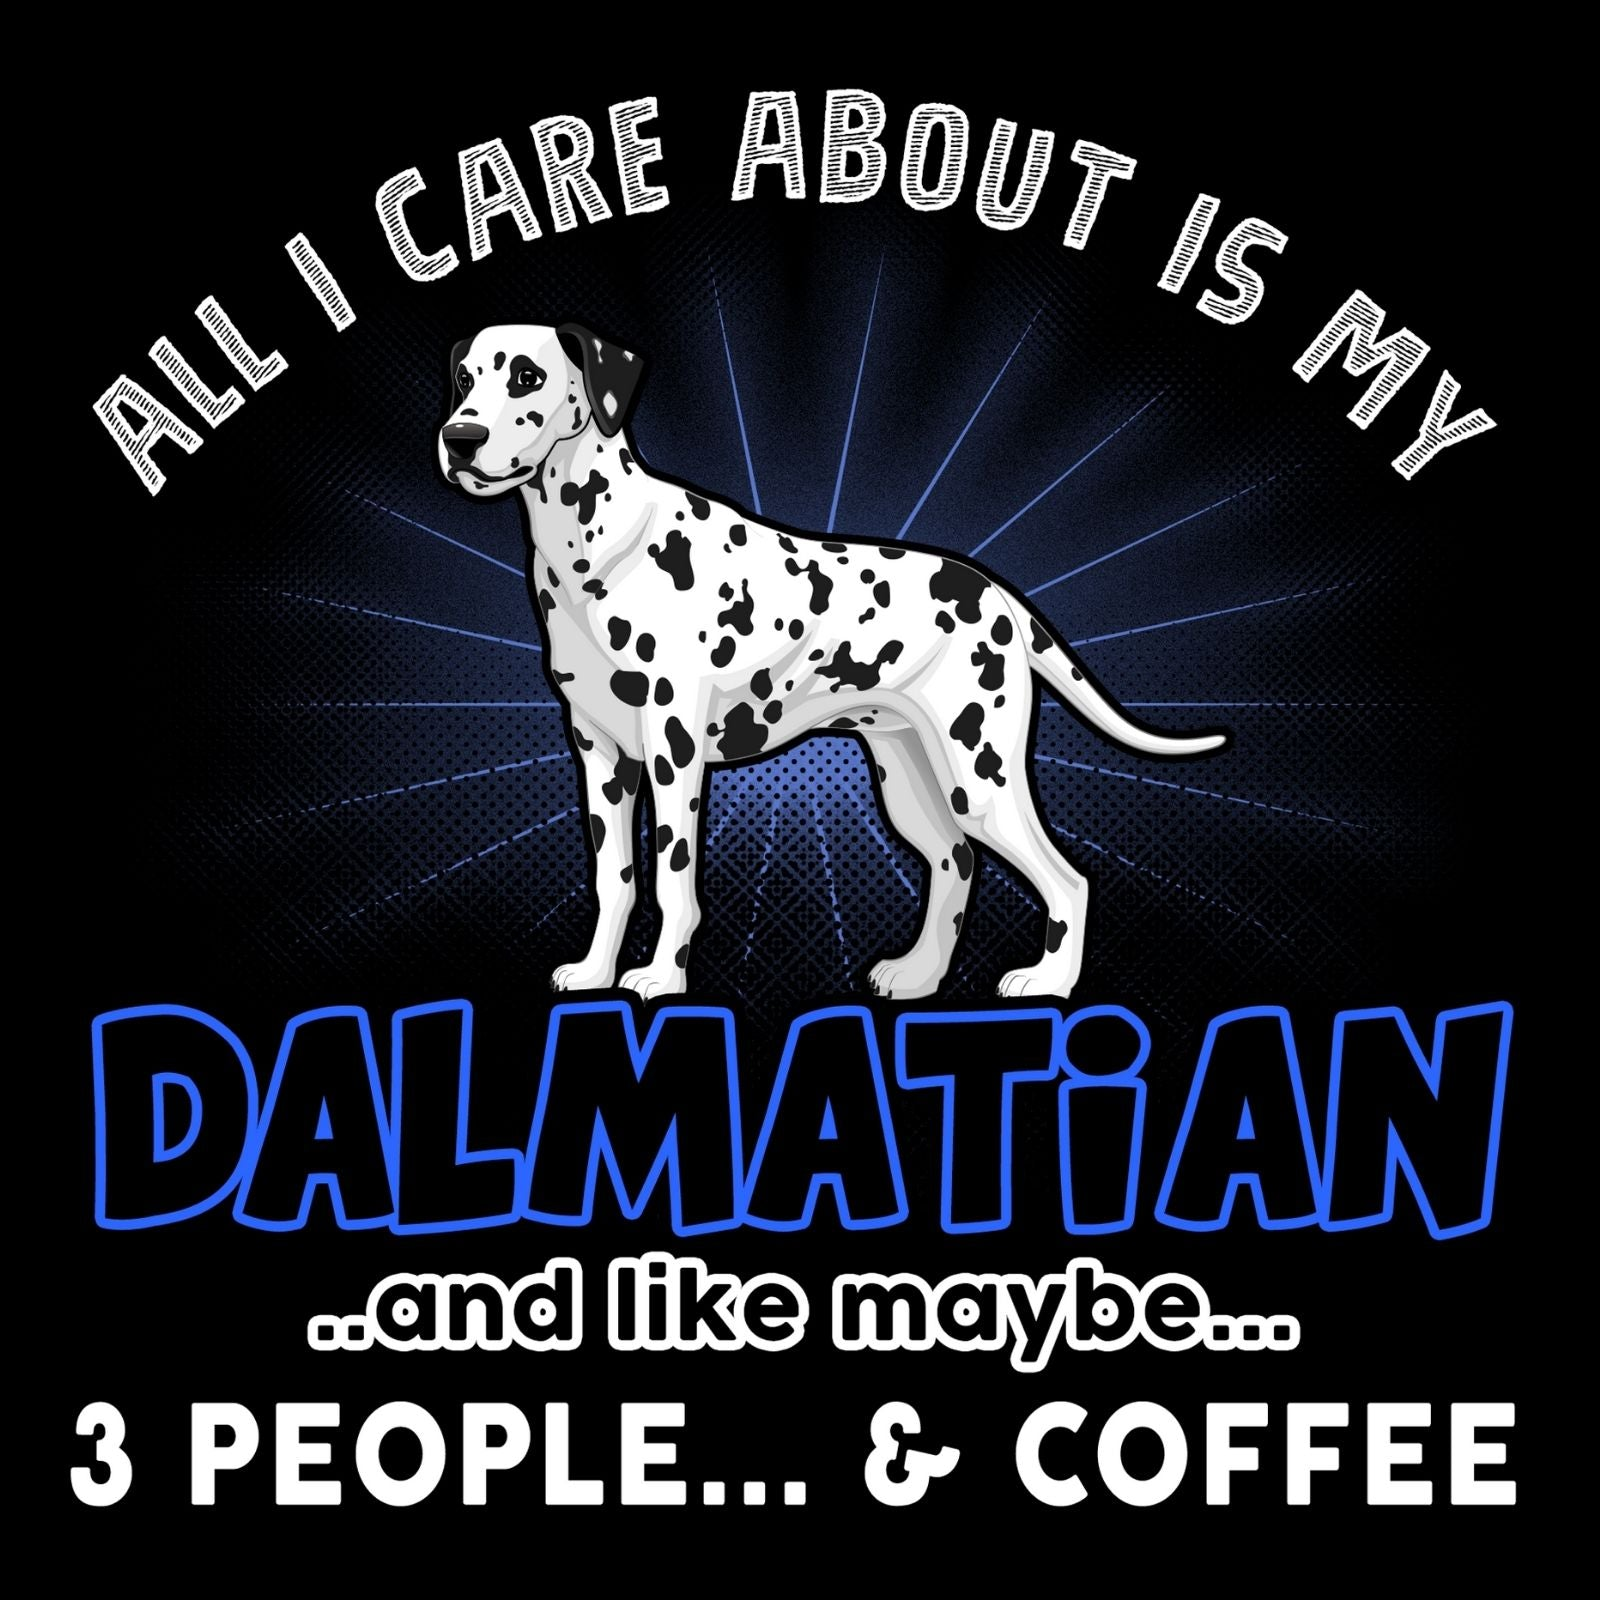 All I Care About Is My Dalmatian - Bastard Graphics